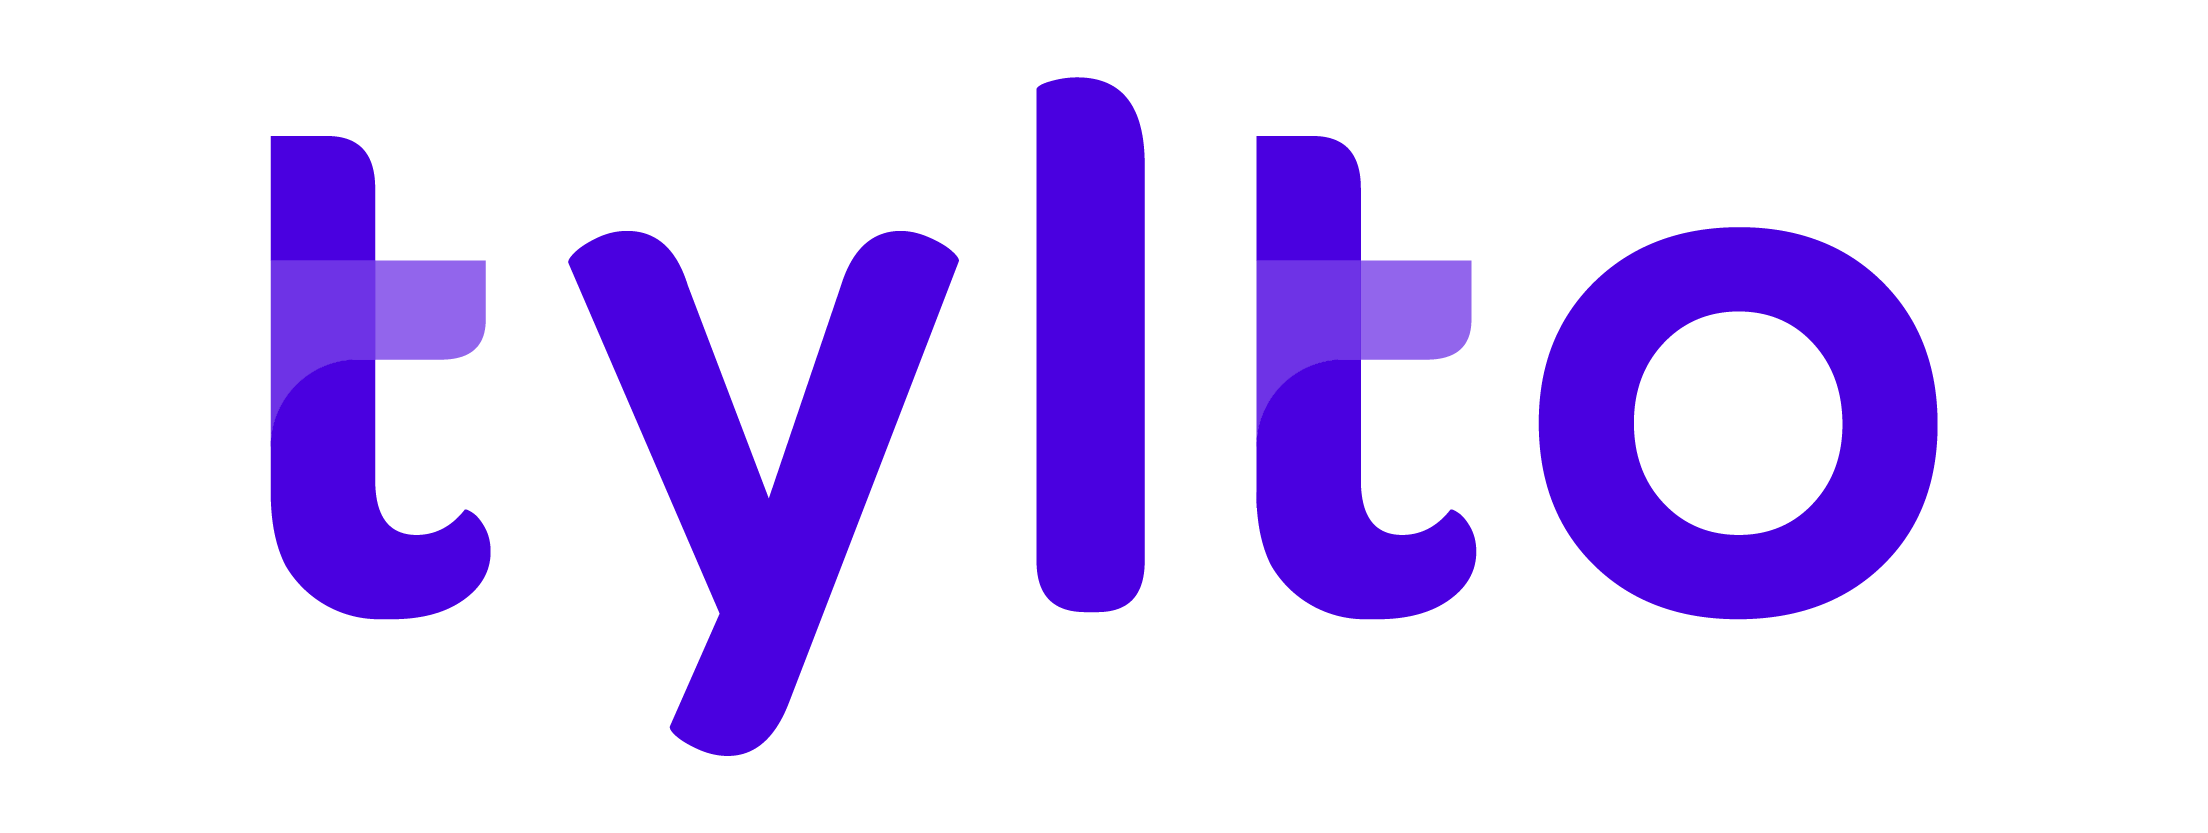 tylto logo_full color